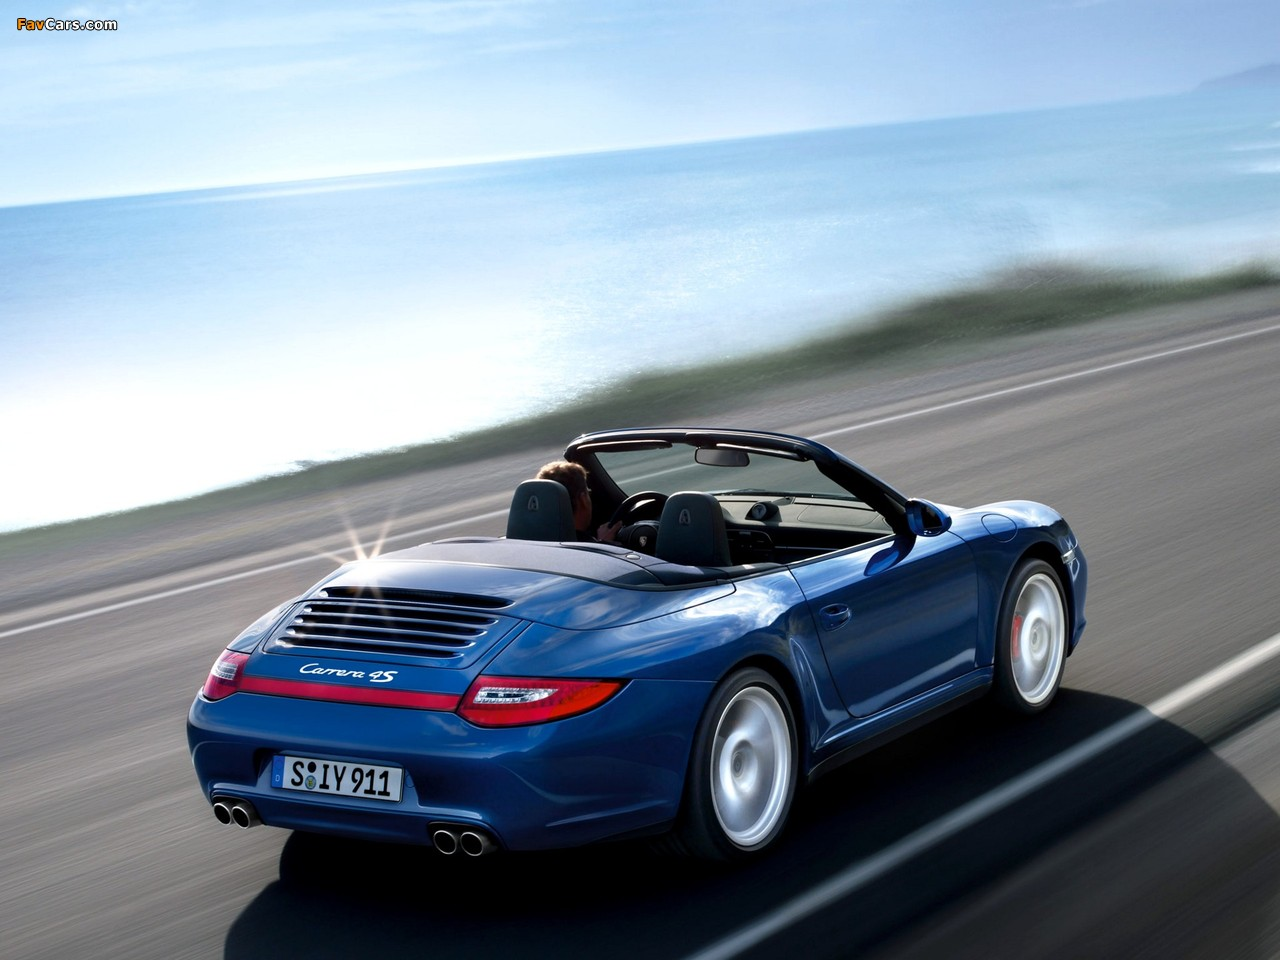 Pictures Of Porsche 911 Carrera 4s Cabriolet 997 2008 12